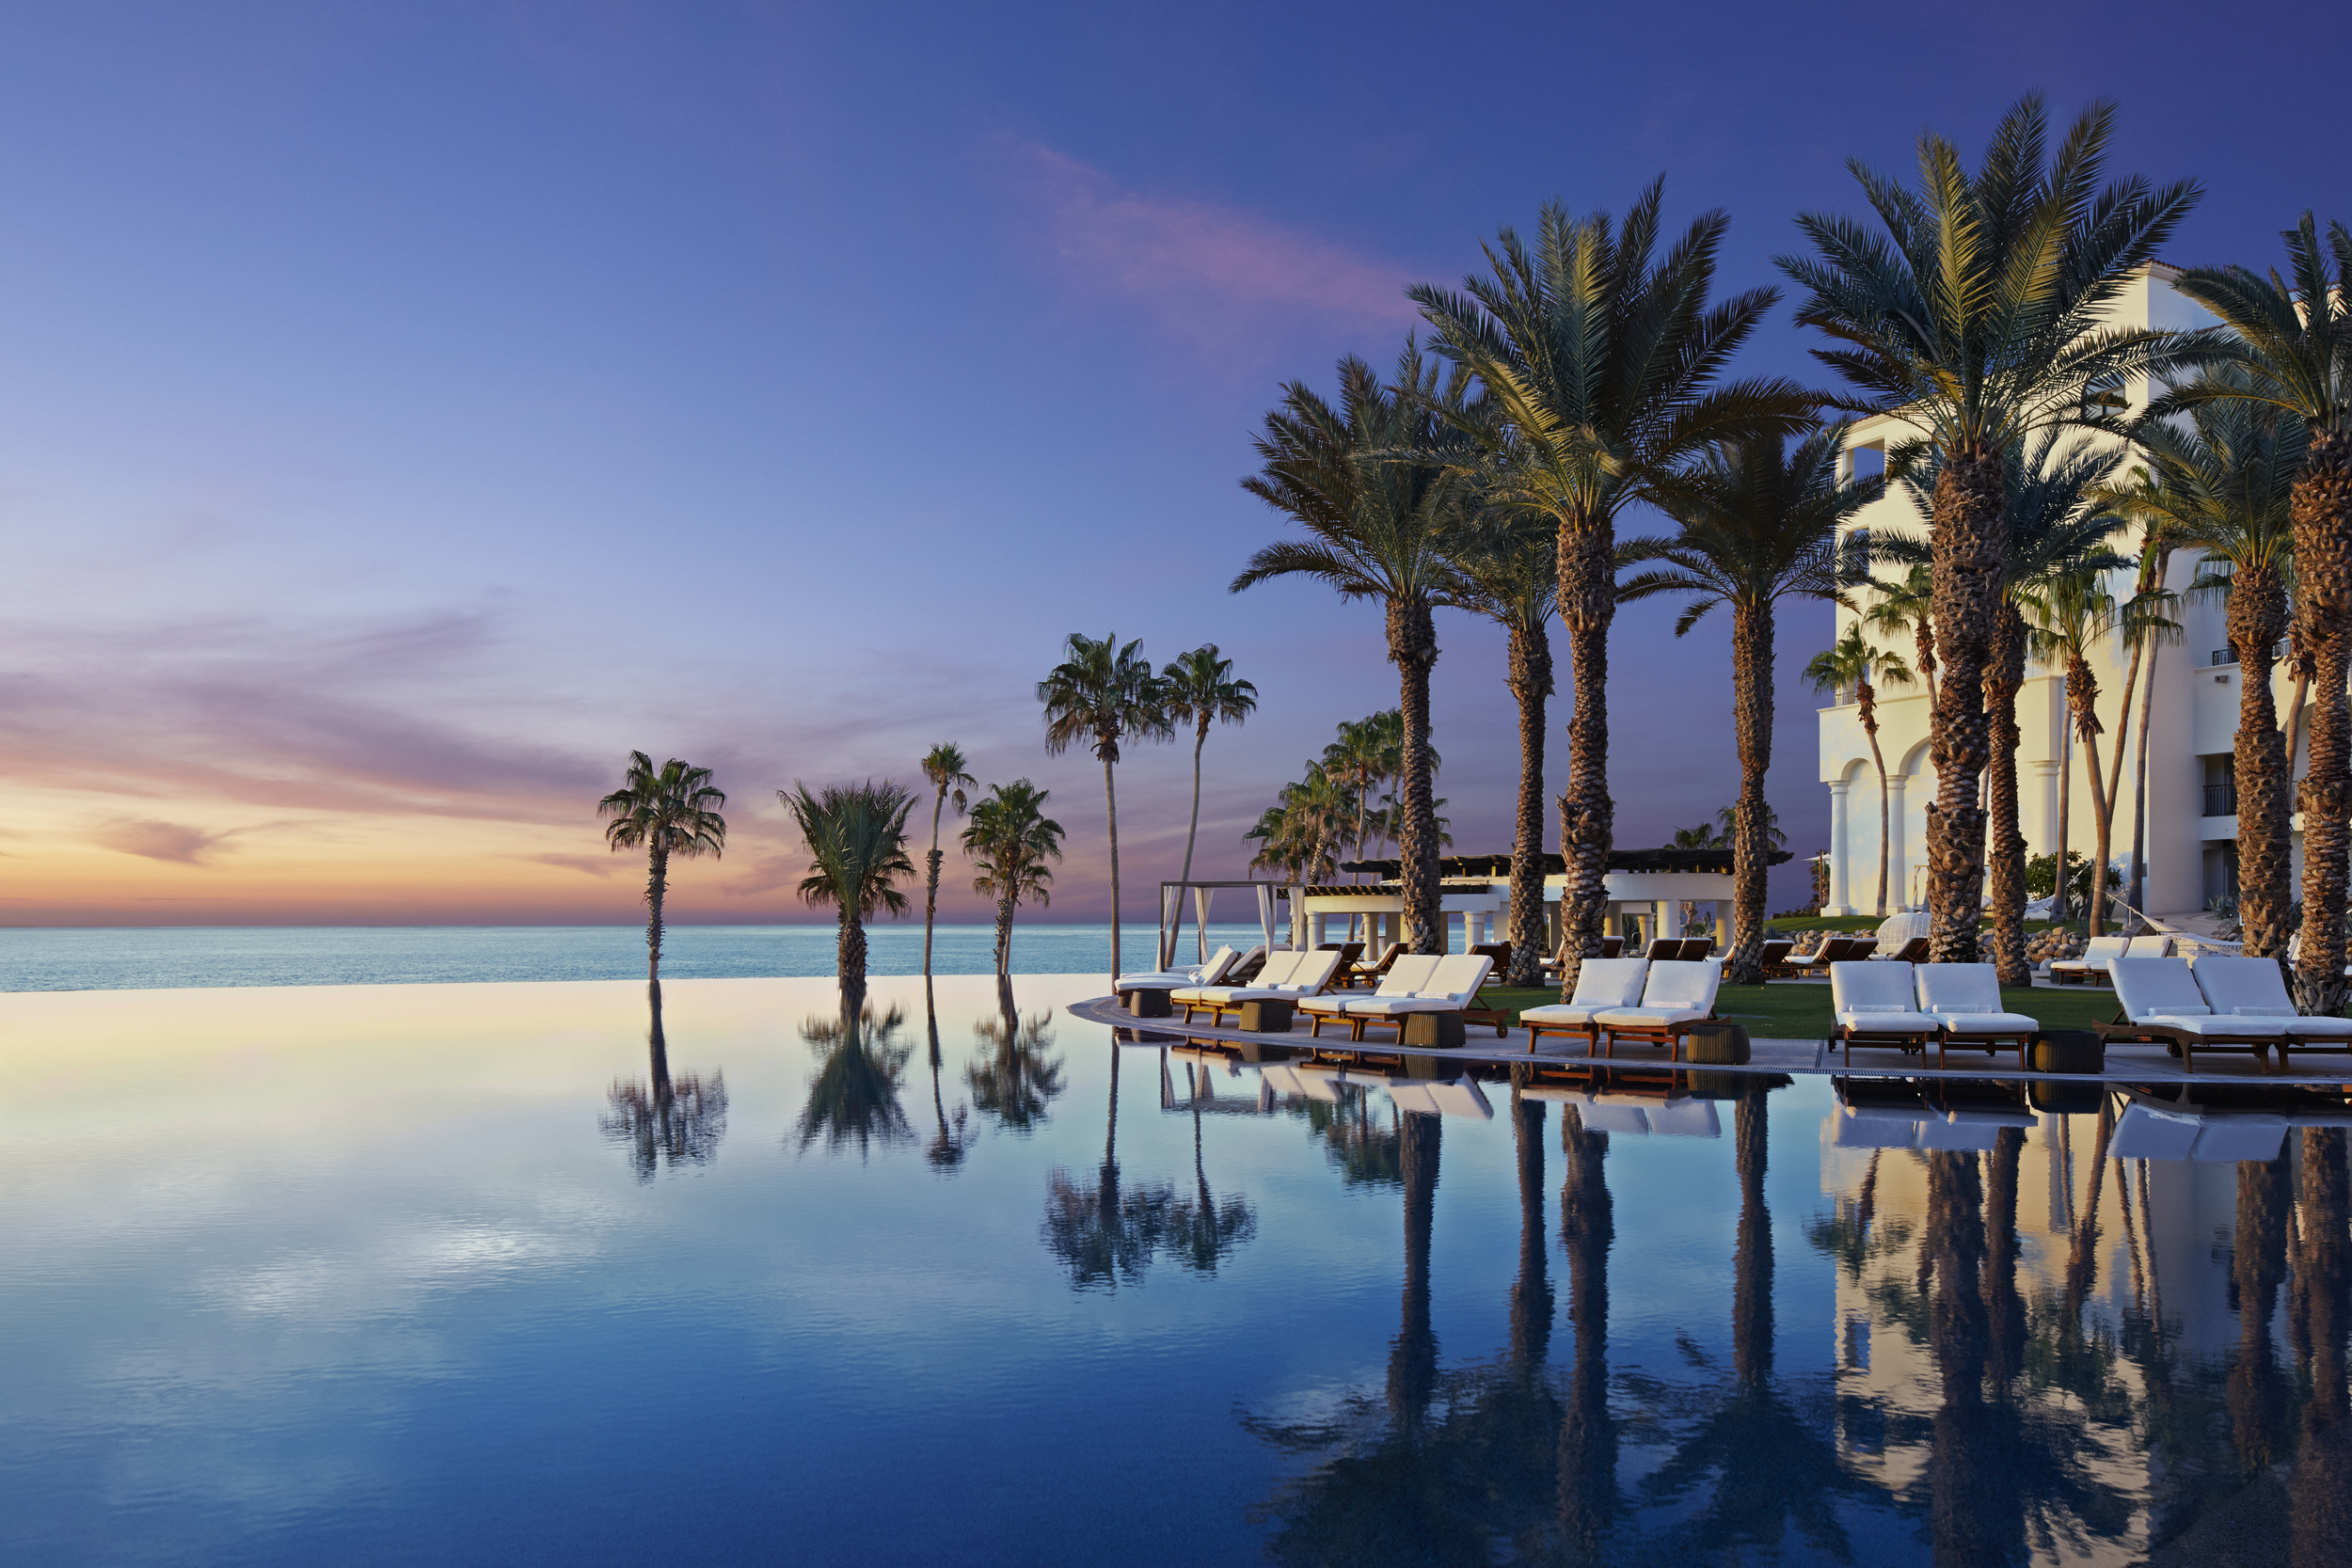 Sun setting on the infinity pool at Hilton Los Cabos Beach & Golf Resort